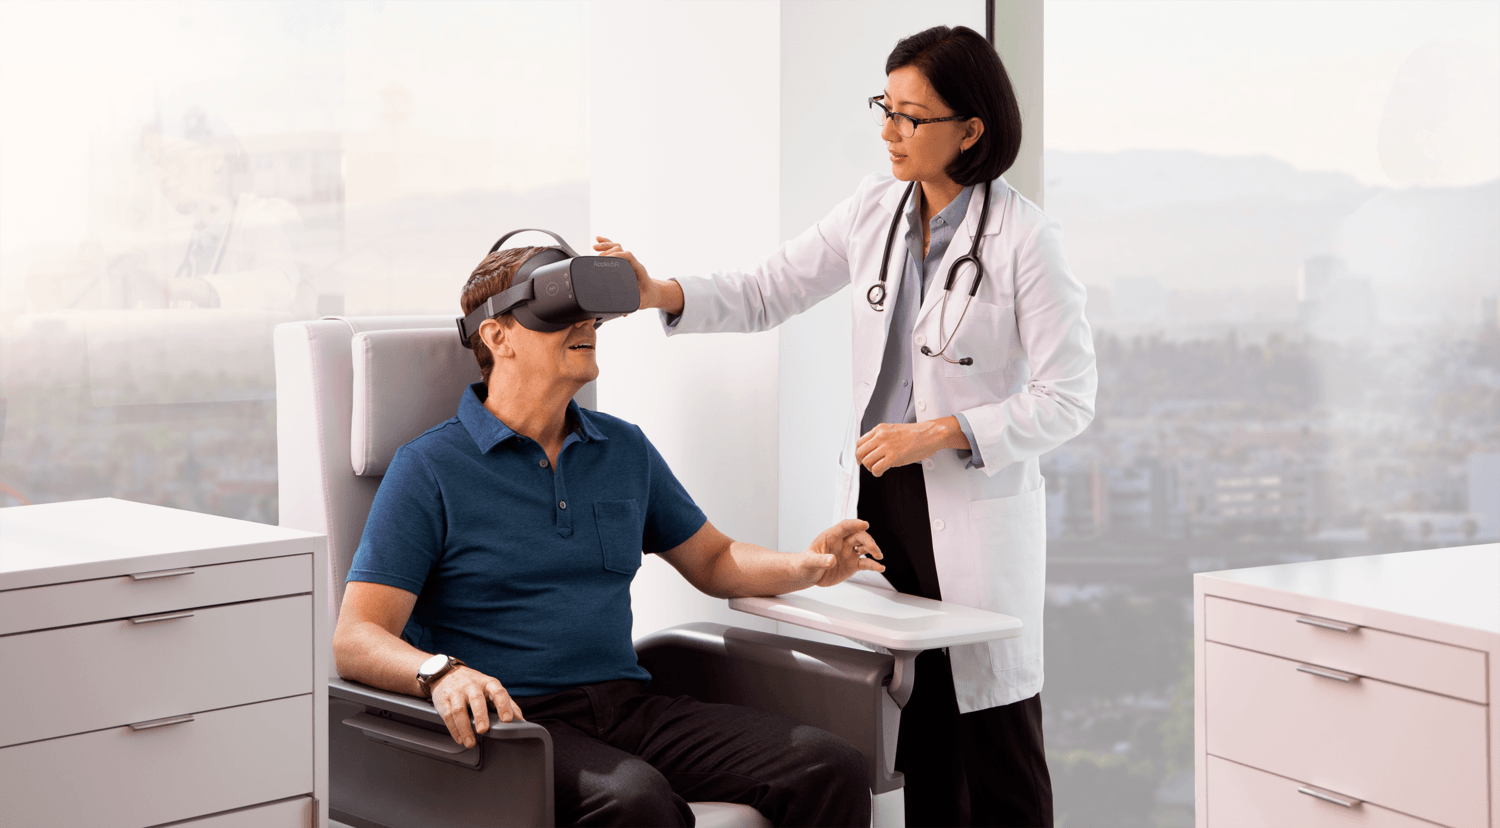 AppliedVR Awarded $2.9M Grants to Study Virtual Reality As An Opioid-Sparing Treatment